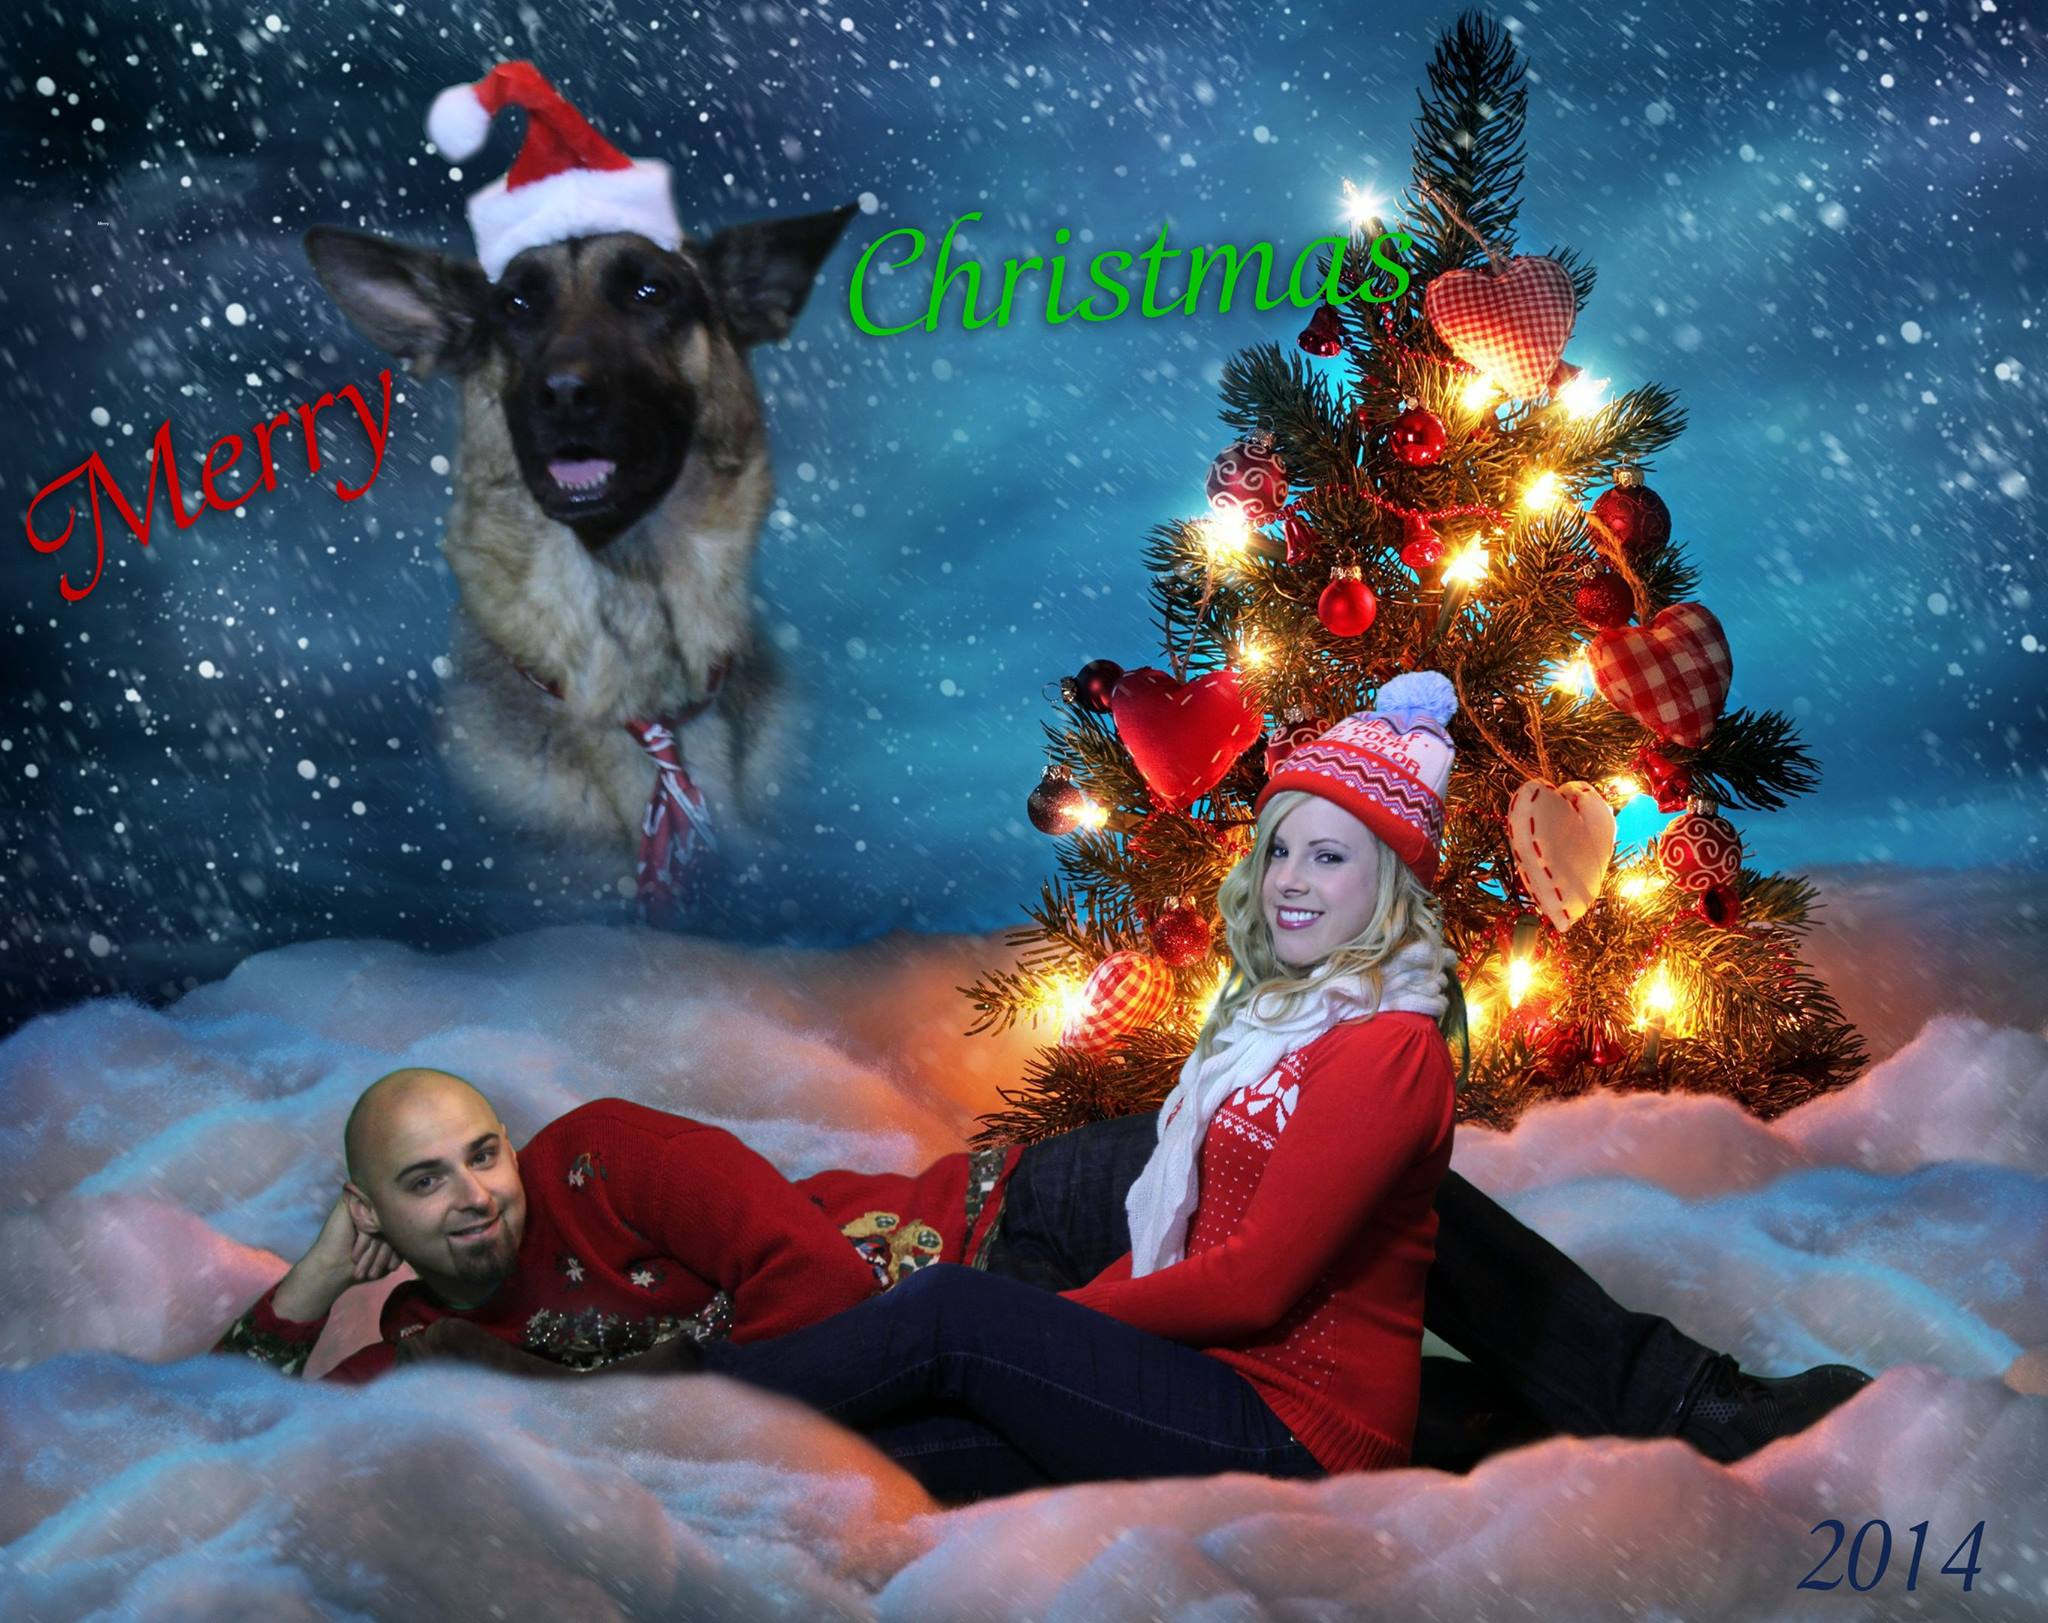 Compositing: Silly Christmas Card